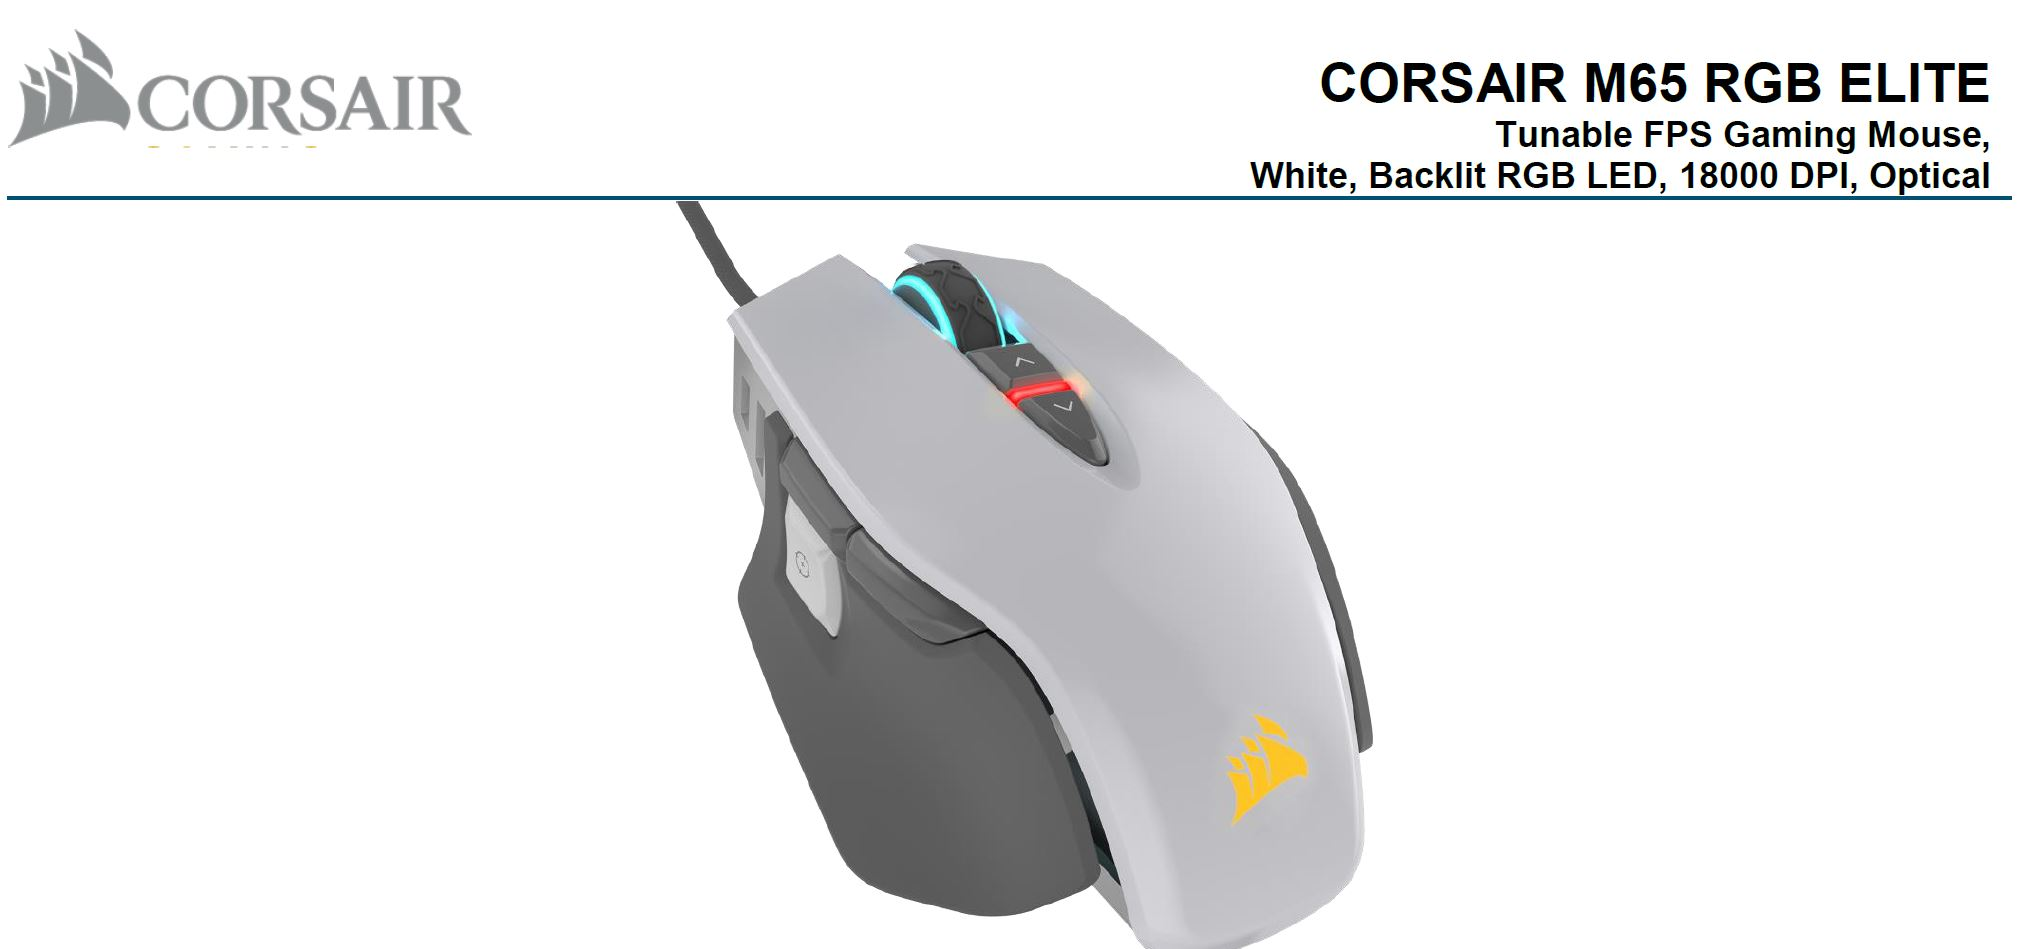 Corsair, M65, RGB, ELITE, Tunable, FPS, Gaming, Mouse, White, with, Black, 18000, DPI, Optical, iCUE, Software.,